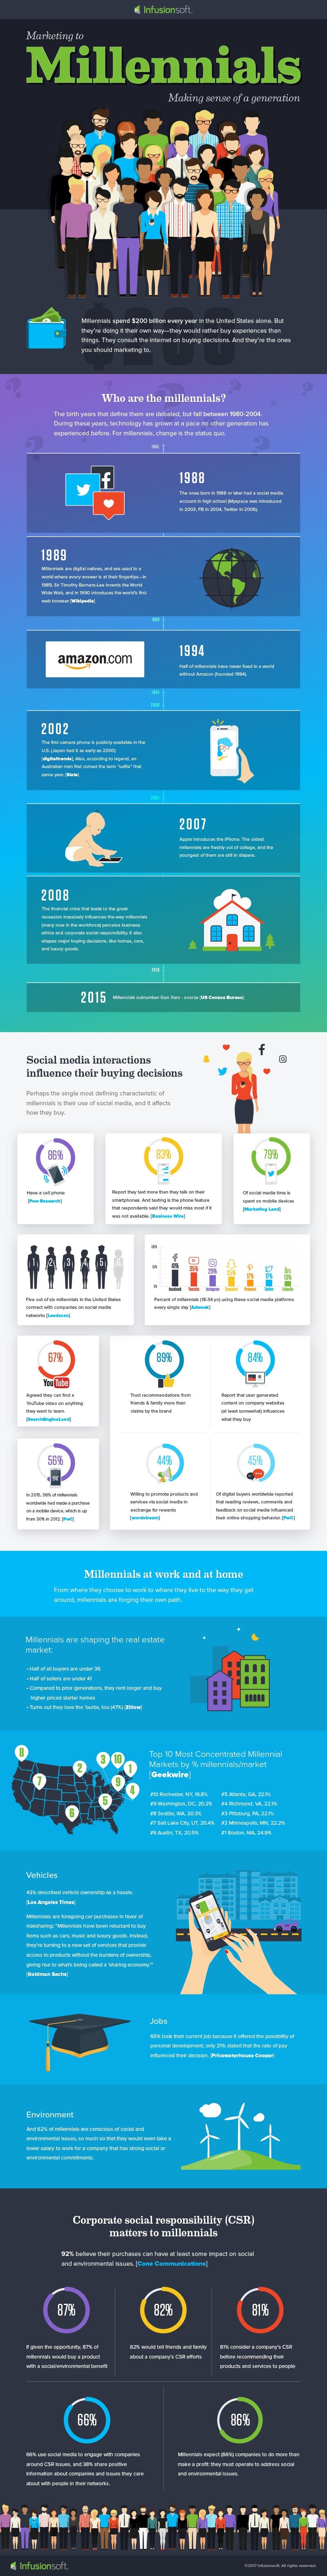 Marketing to Millennials: Making Sense of a Generation - #infographic